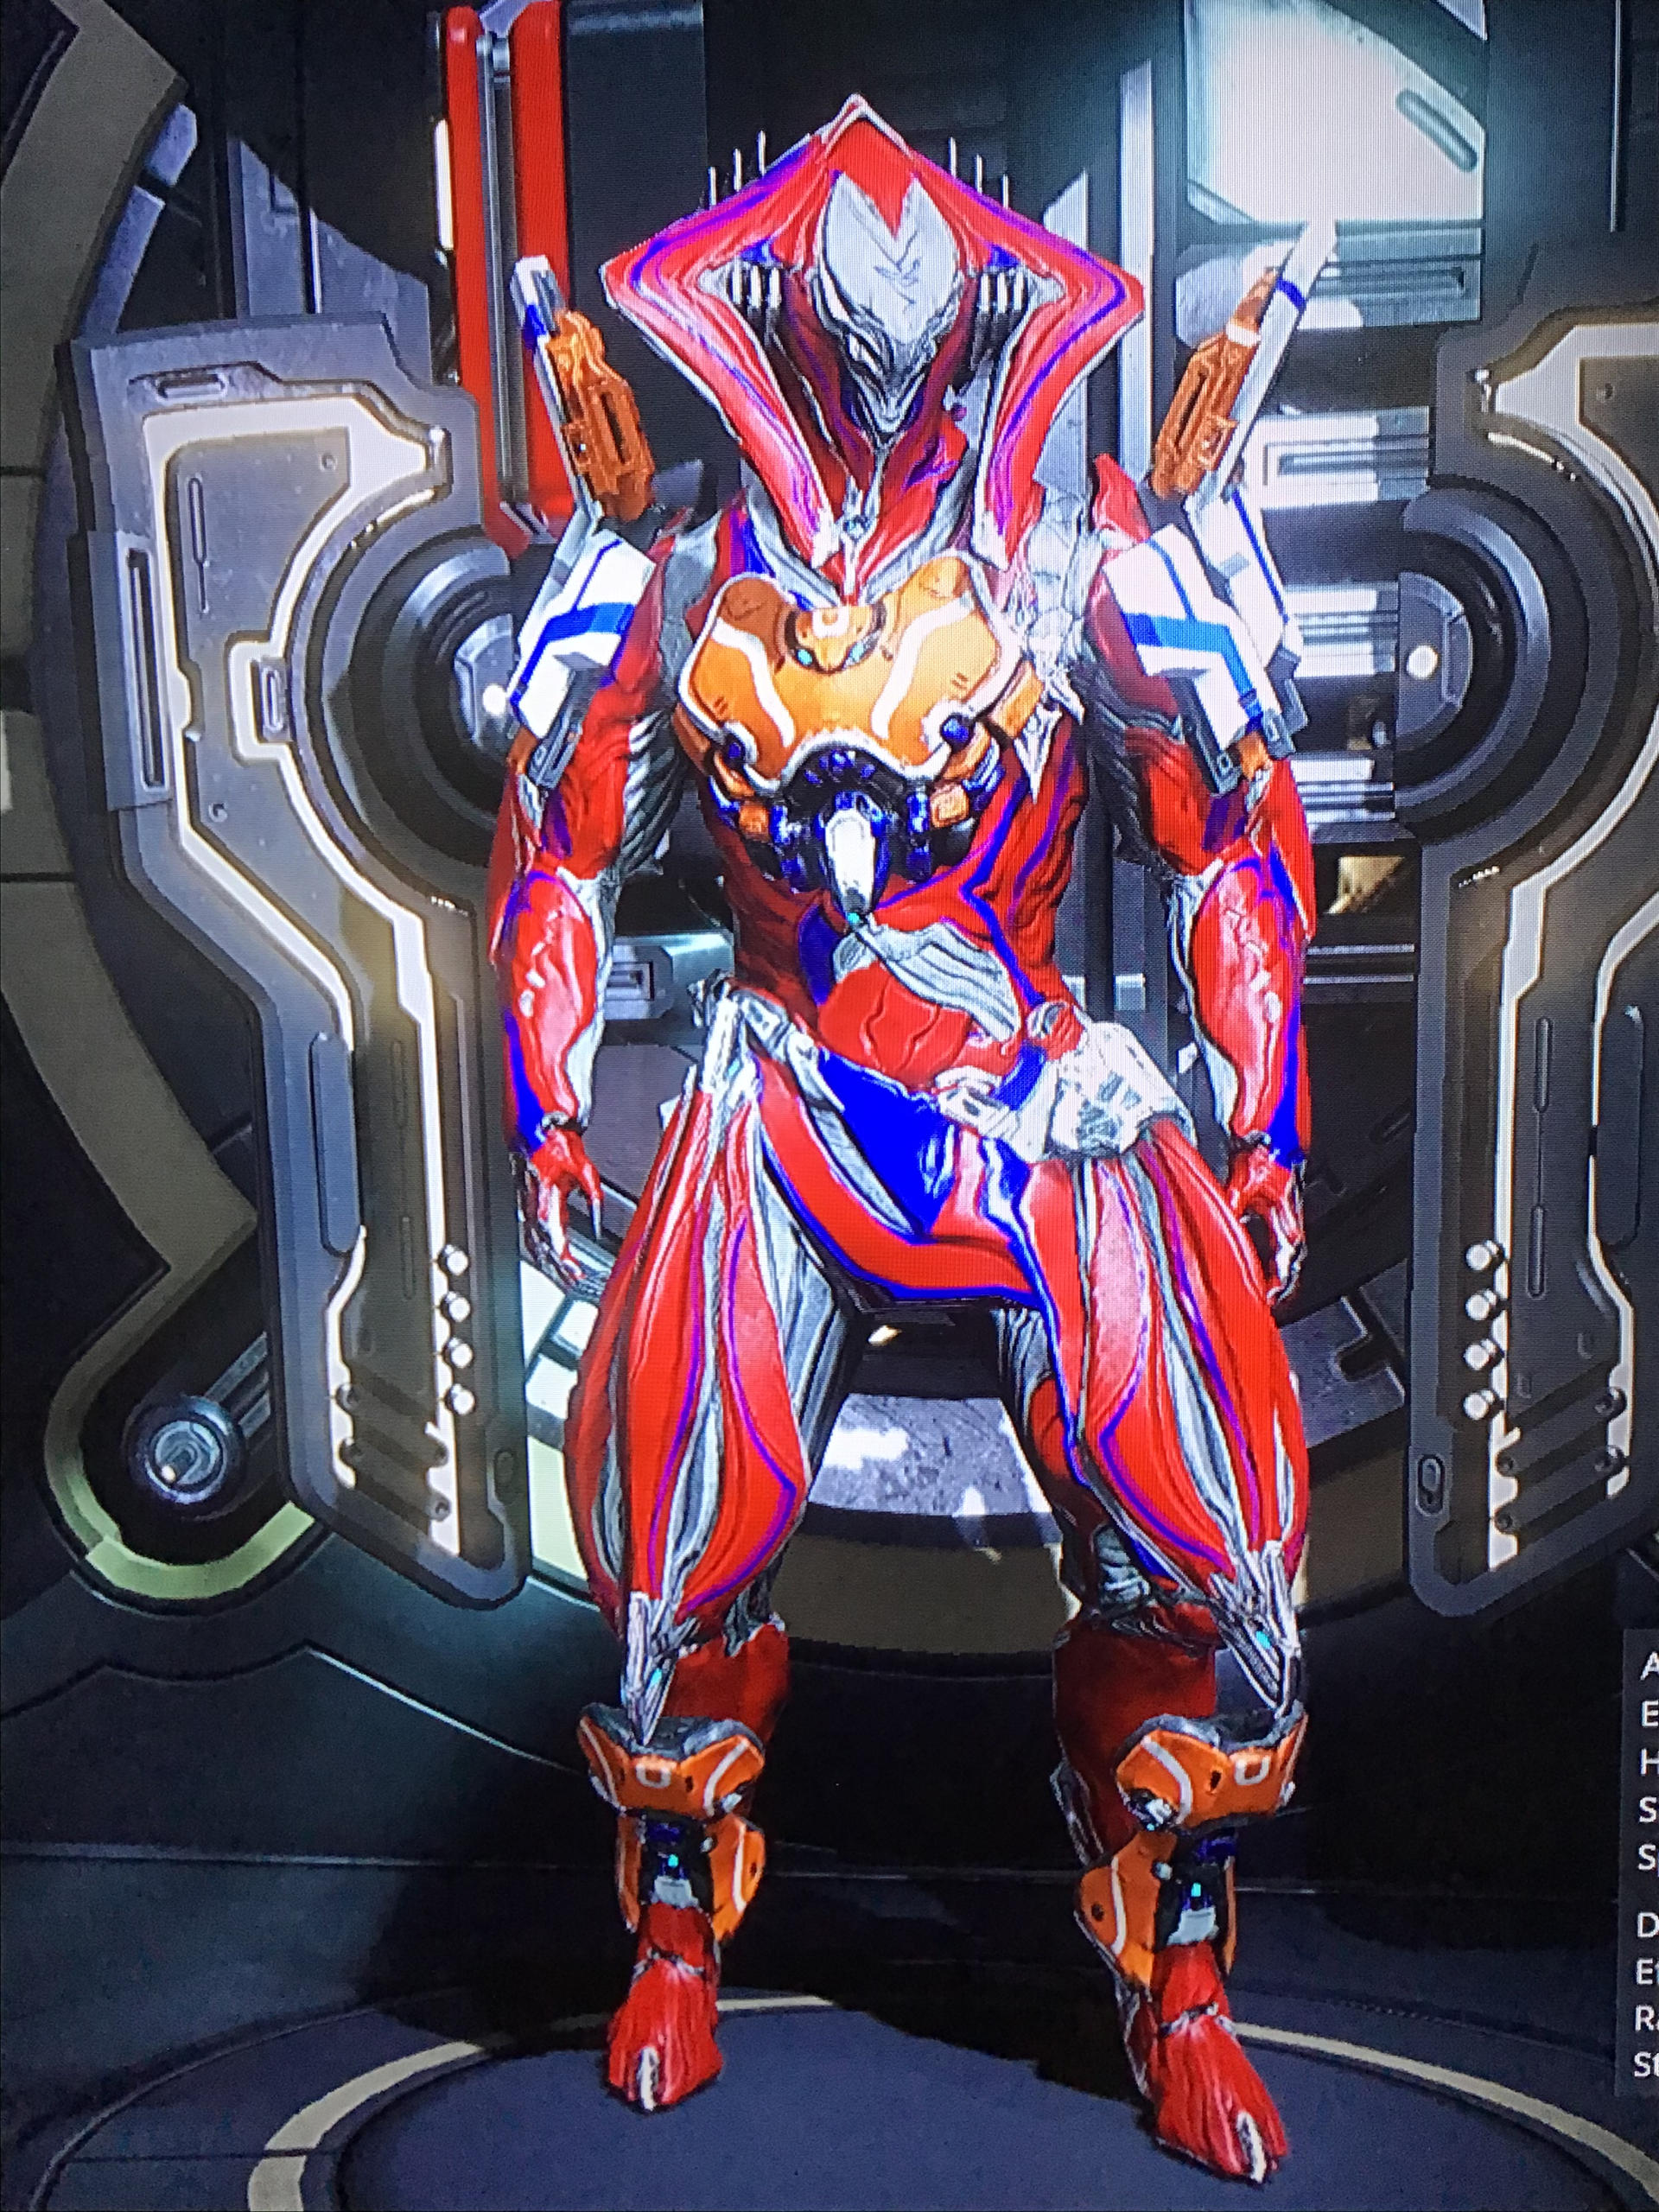 Warframe Fashion Frame Dutch Loki By Cybertech02 On Deviantart Check out the build video this nova fashion was in: warframe fashion frame dutch loki by